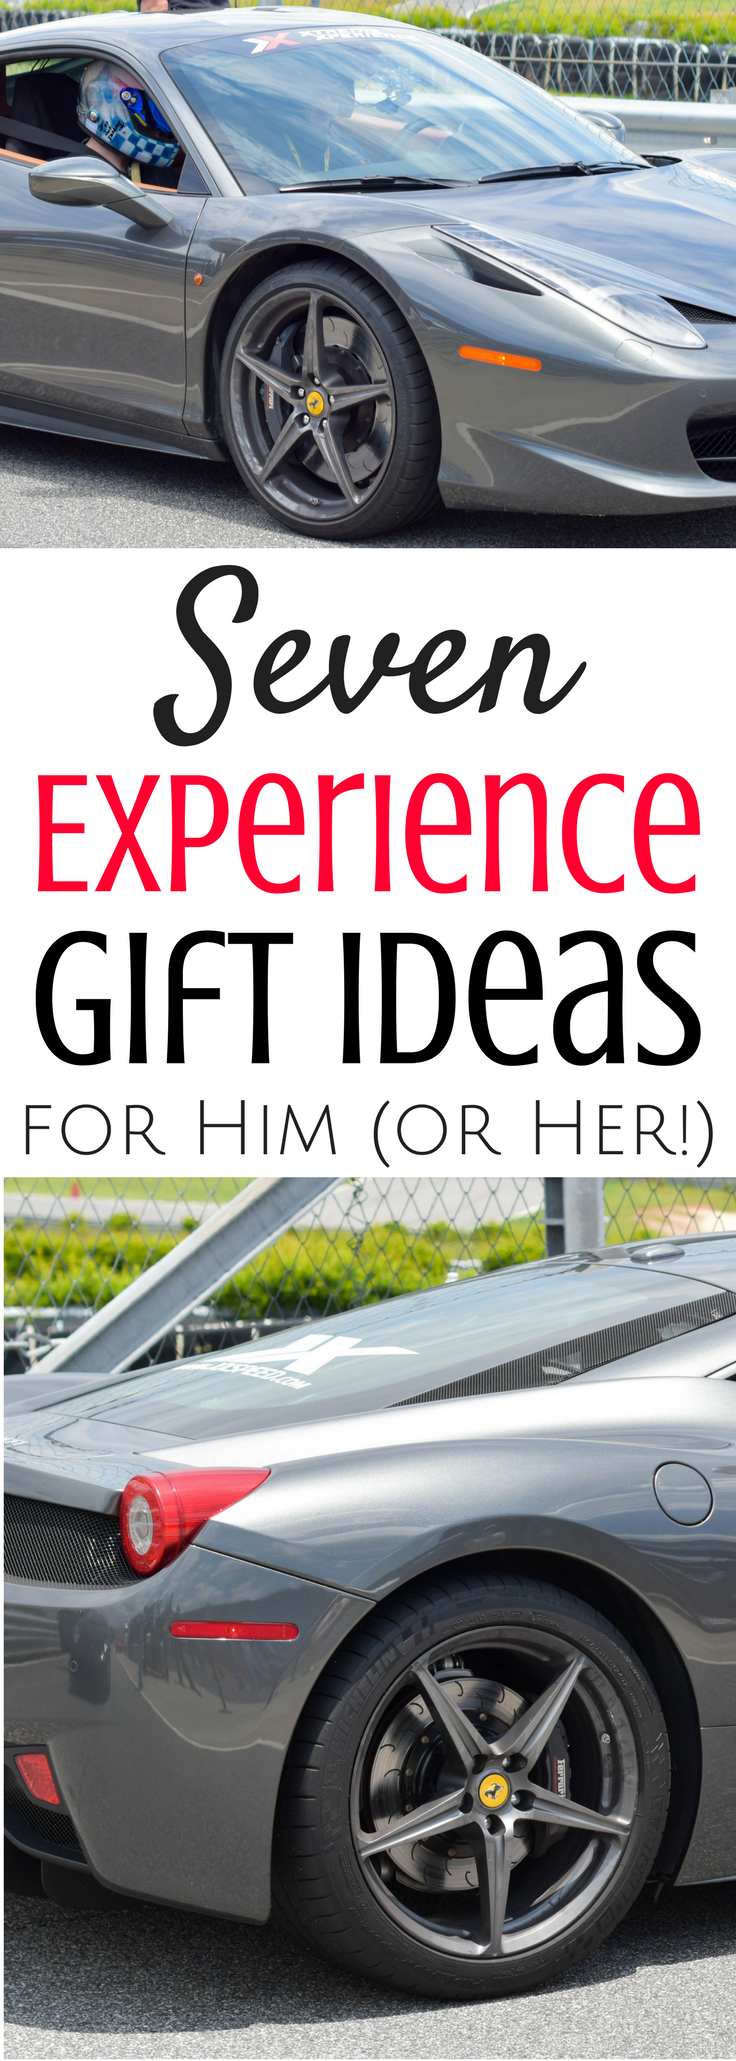 Seven Experience Gift Ideas for Him (or Her!)